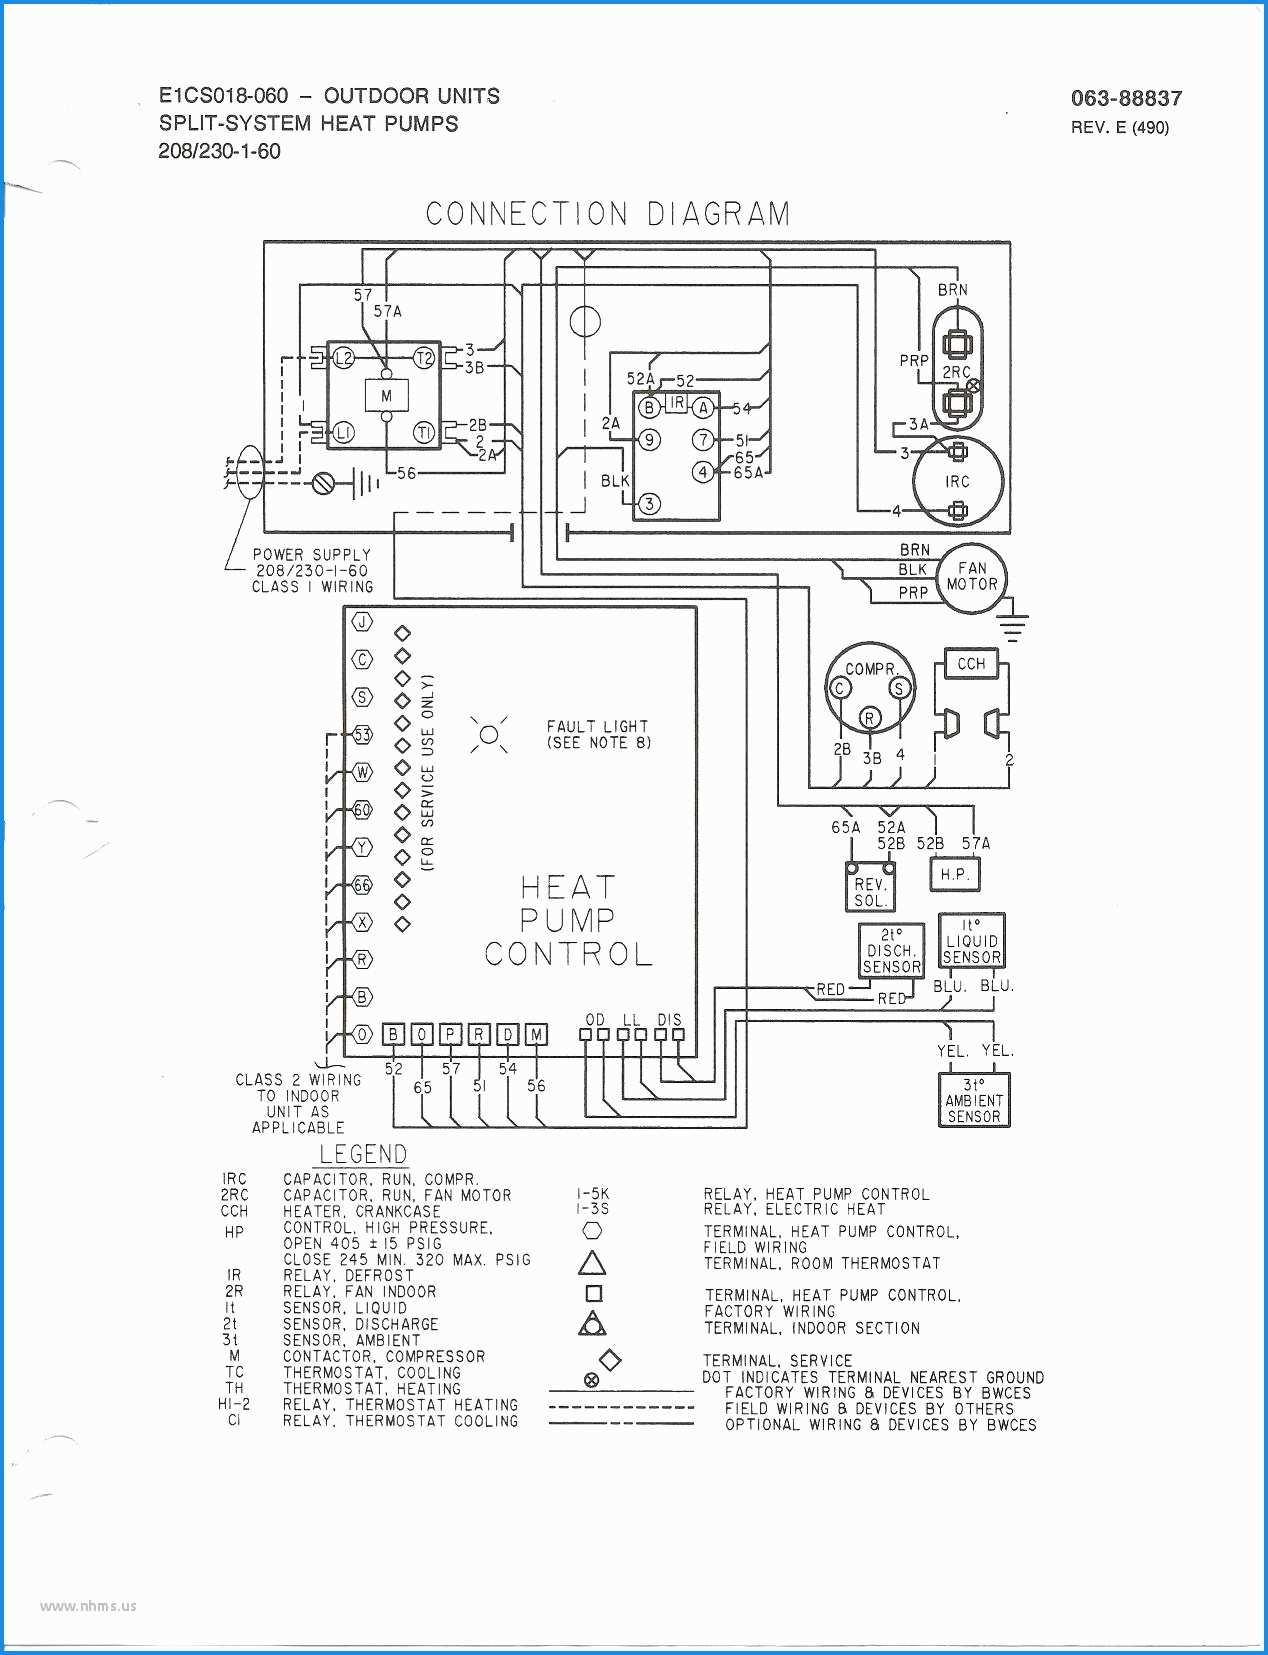 1998 Ford Explorer Trailer Wiring Diagram Unequaled Ford Explorer - 1998 Ford Explorer Trailer Wiring Diagram